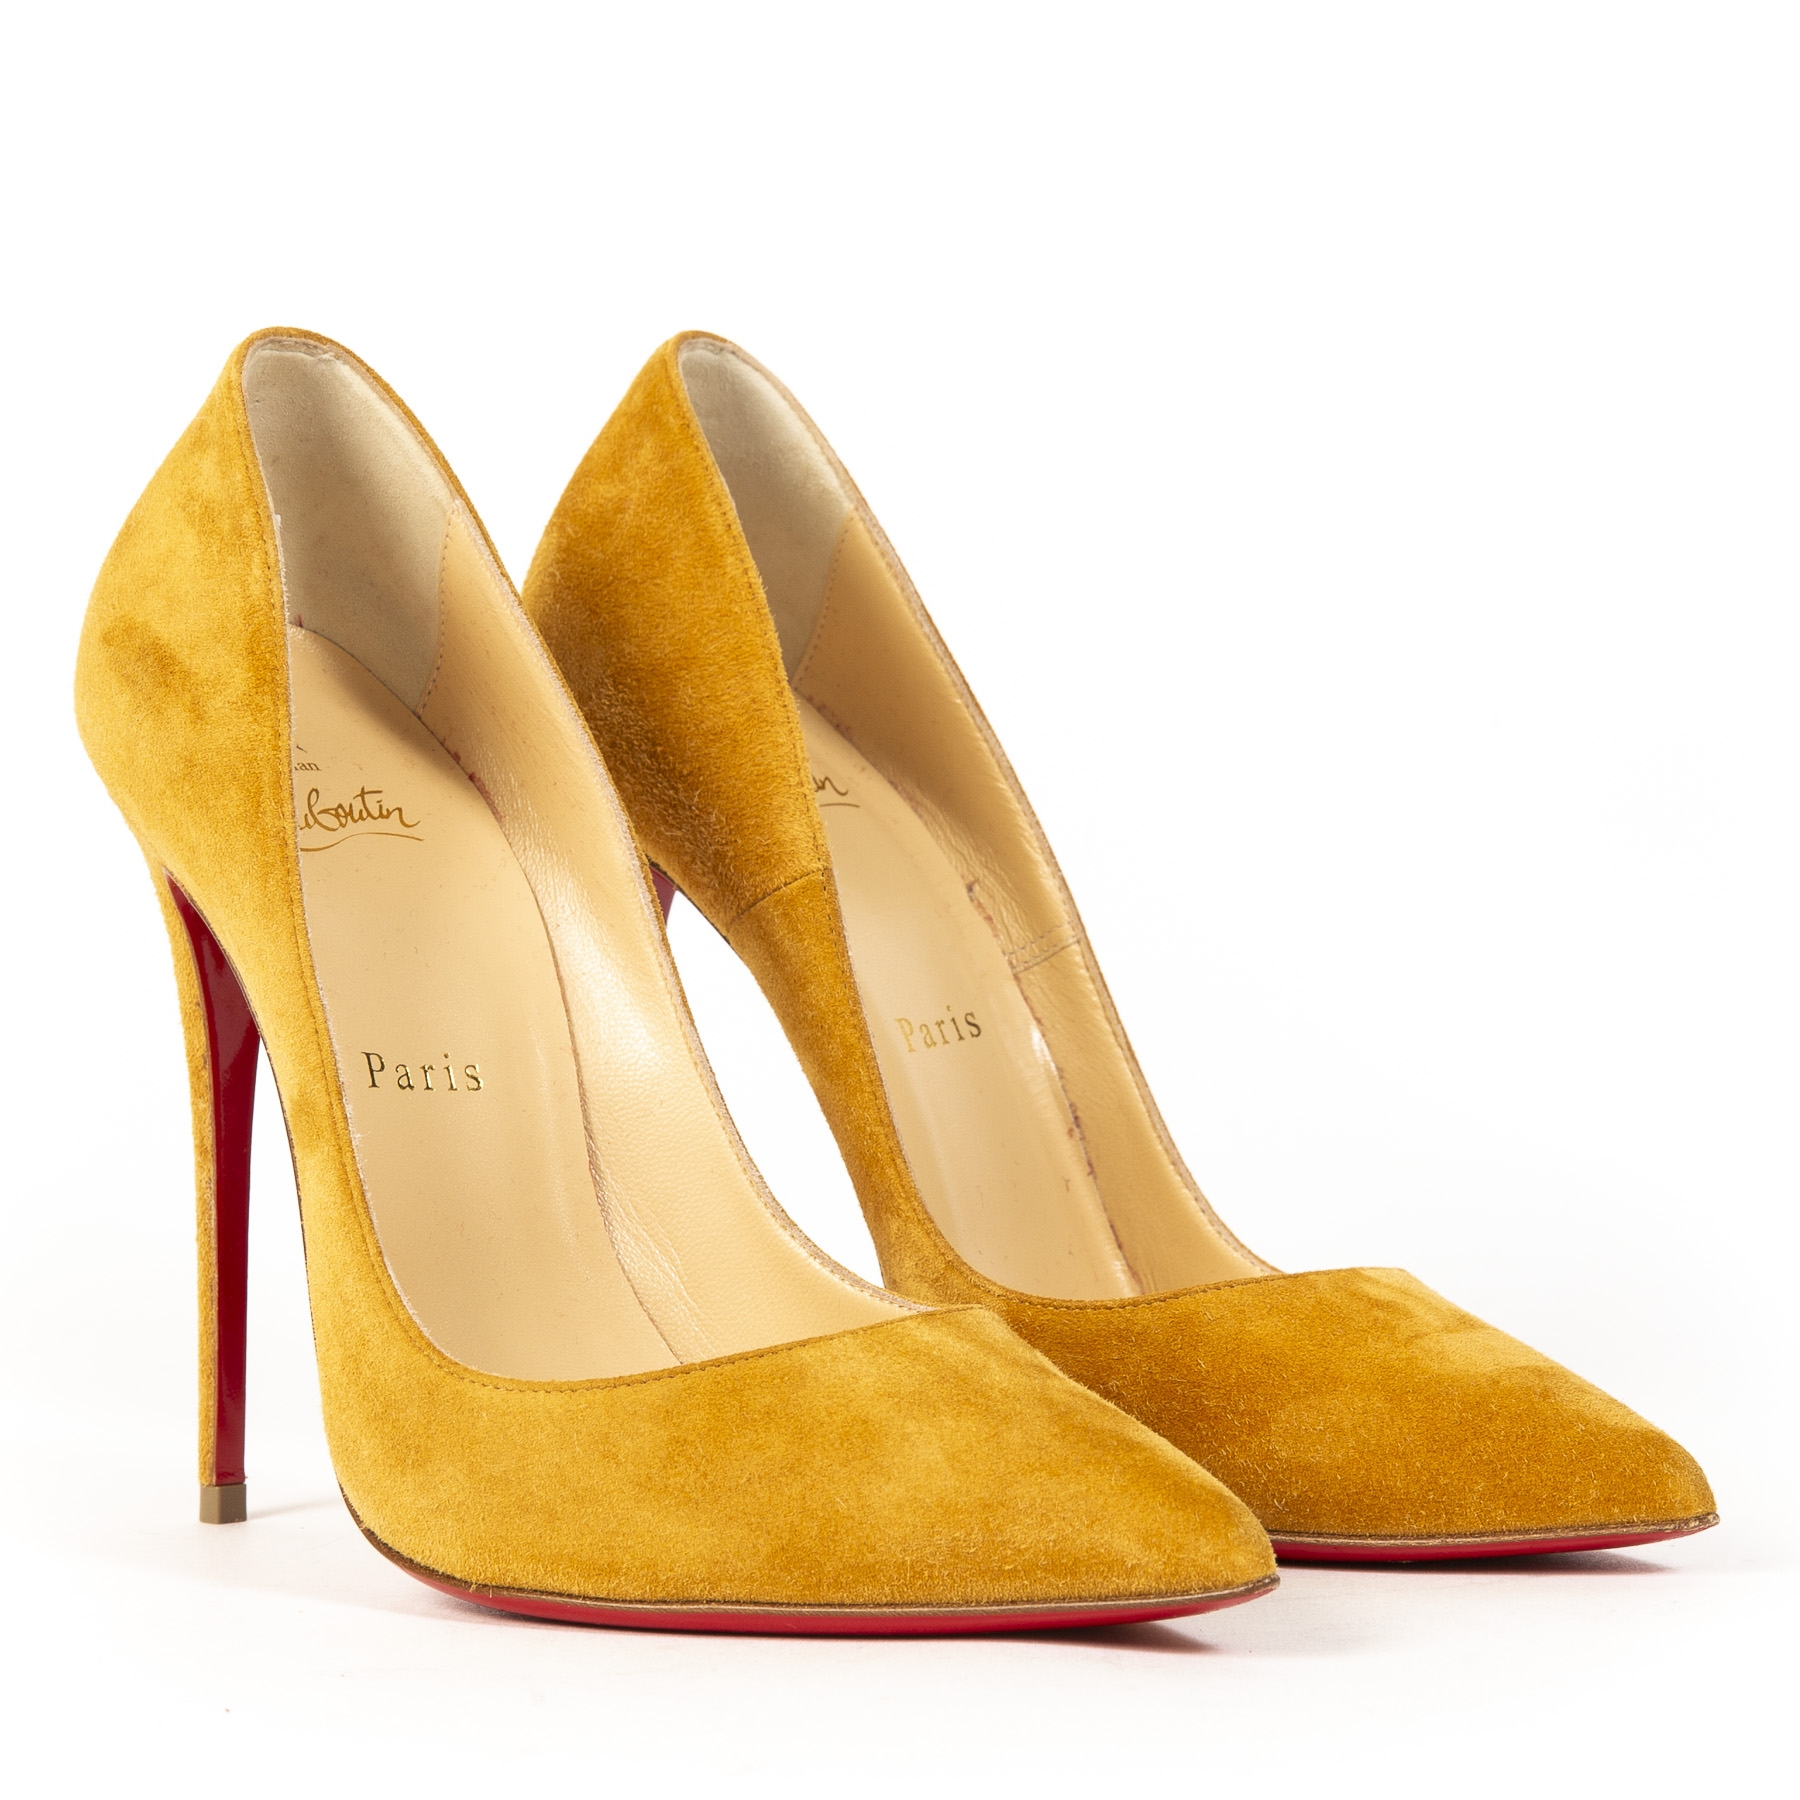 We buy and sell your authentic Christian Louboutin Suede Camel Heels - Size 38